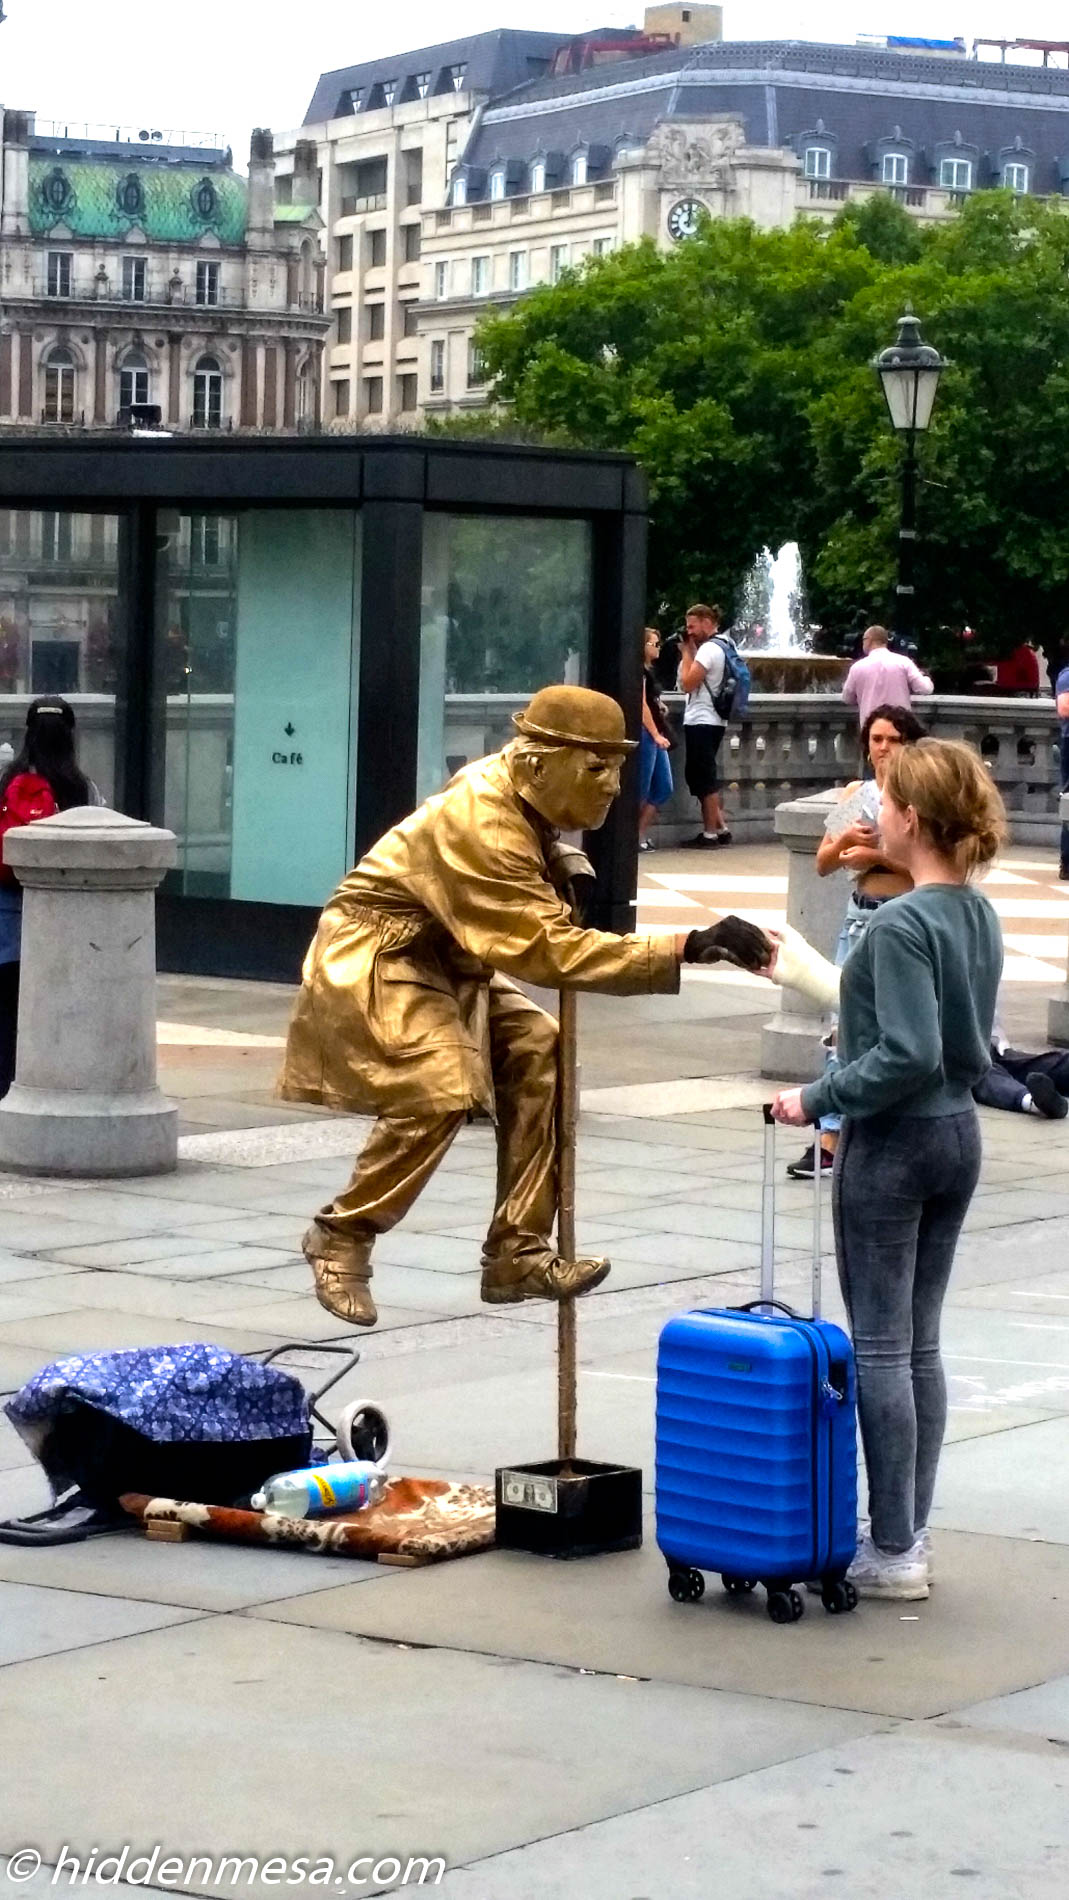 Another odd character in Trafalgar Square.